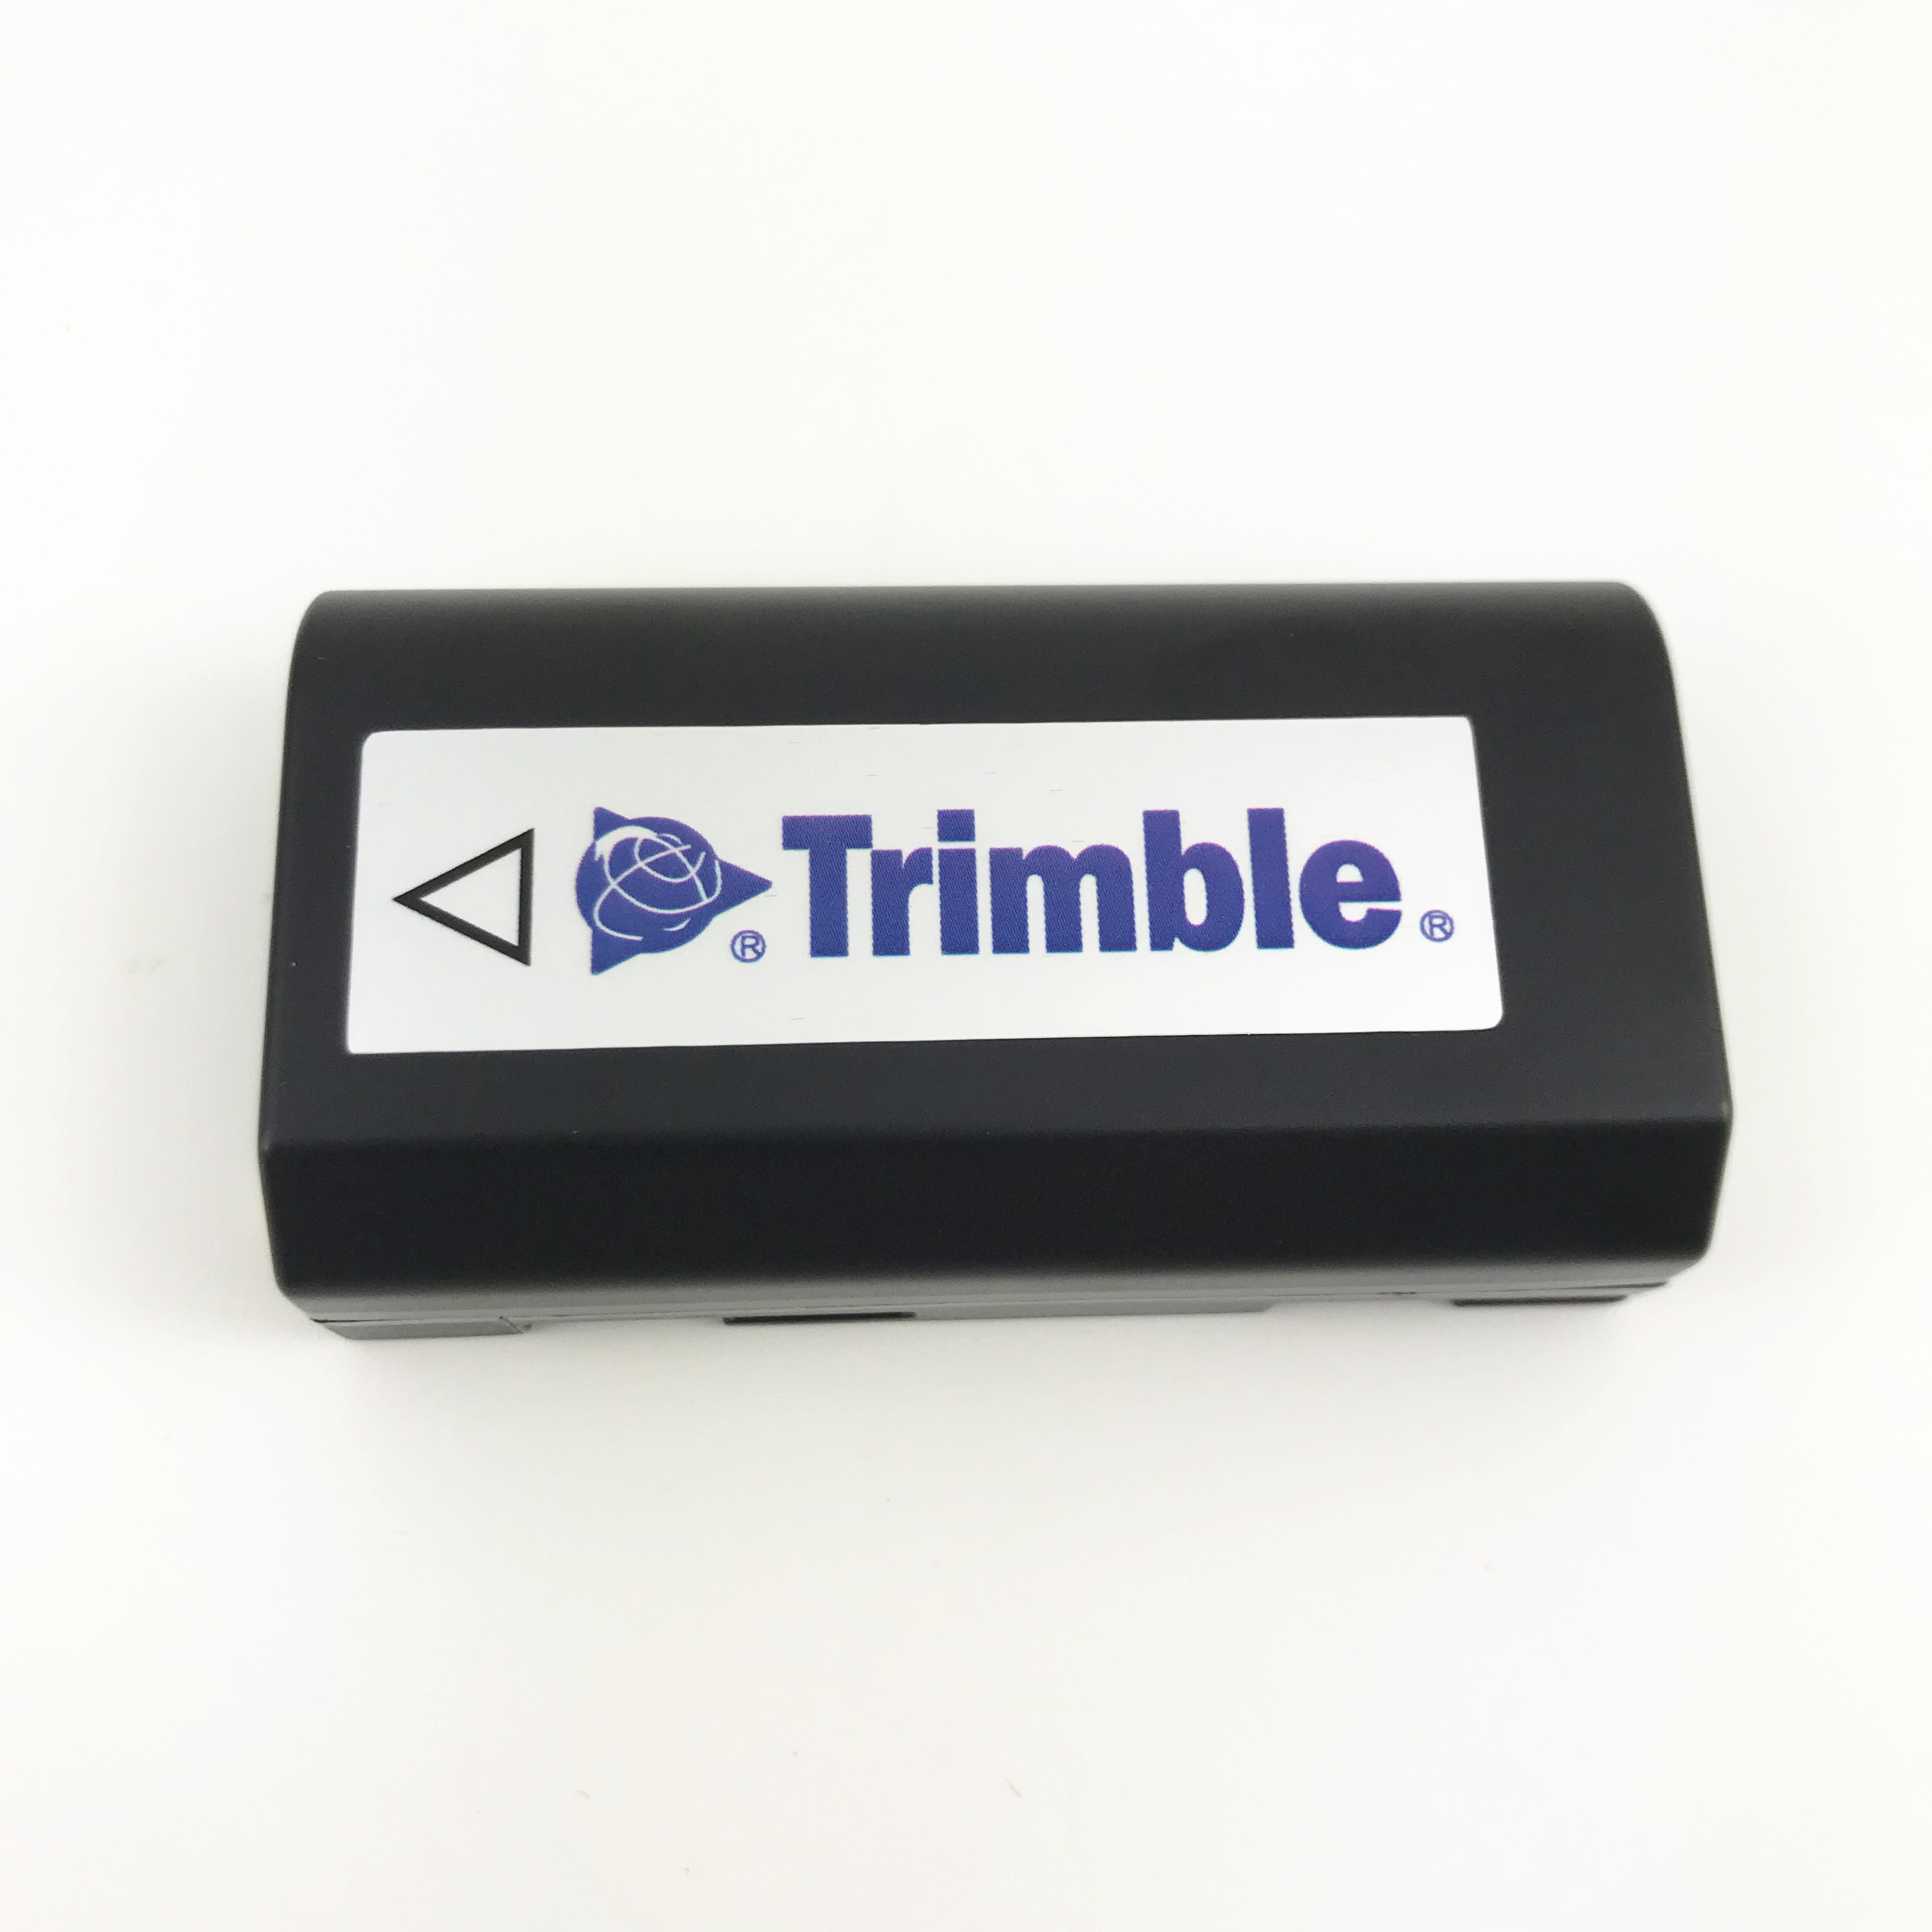 NEW Trimble 7.4V 3400mAh Battery for Trimble 54344 92600 Battery 5700 5800 MT1000 R7 R8 GPS